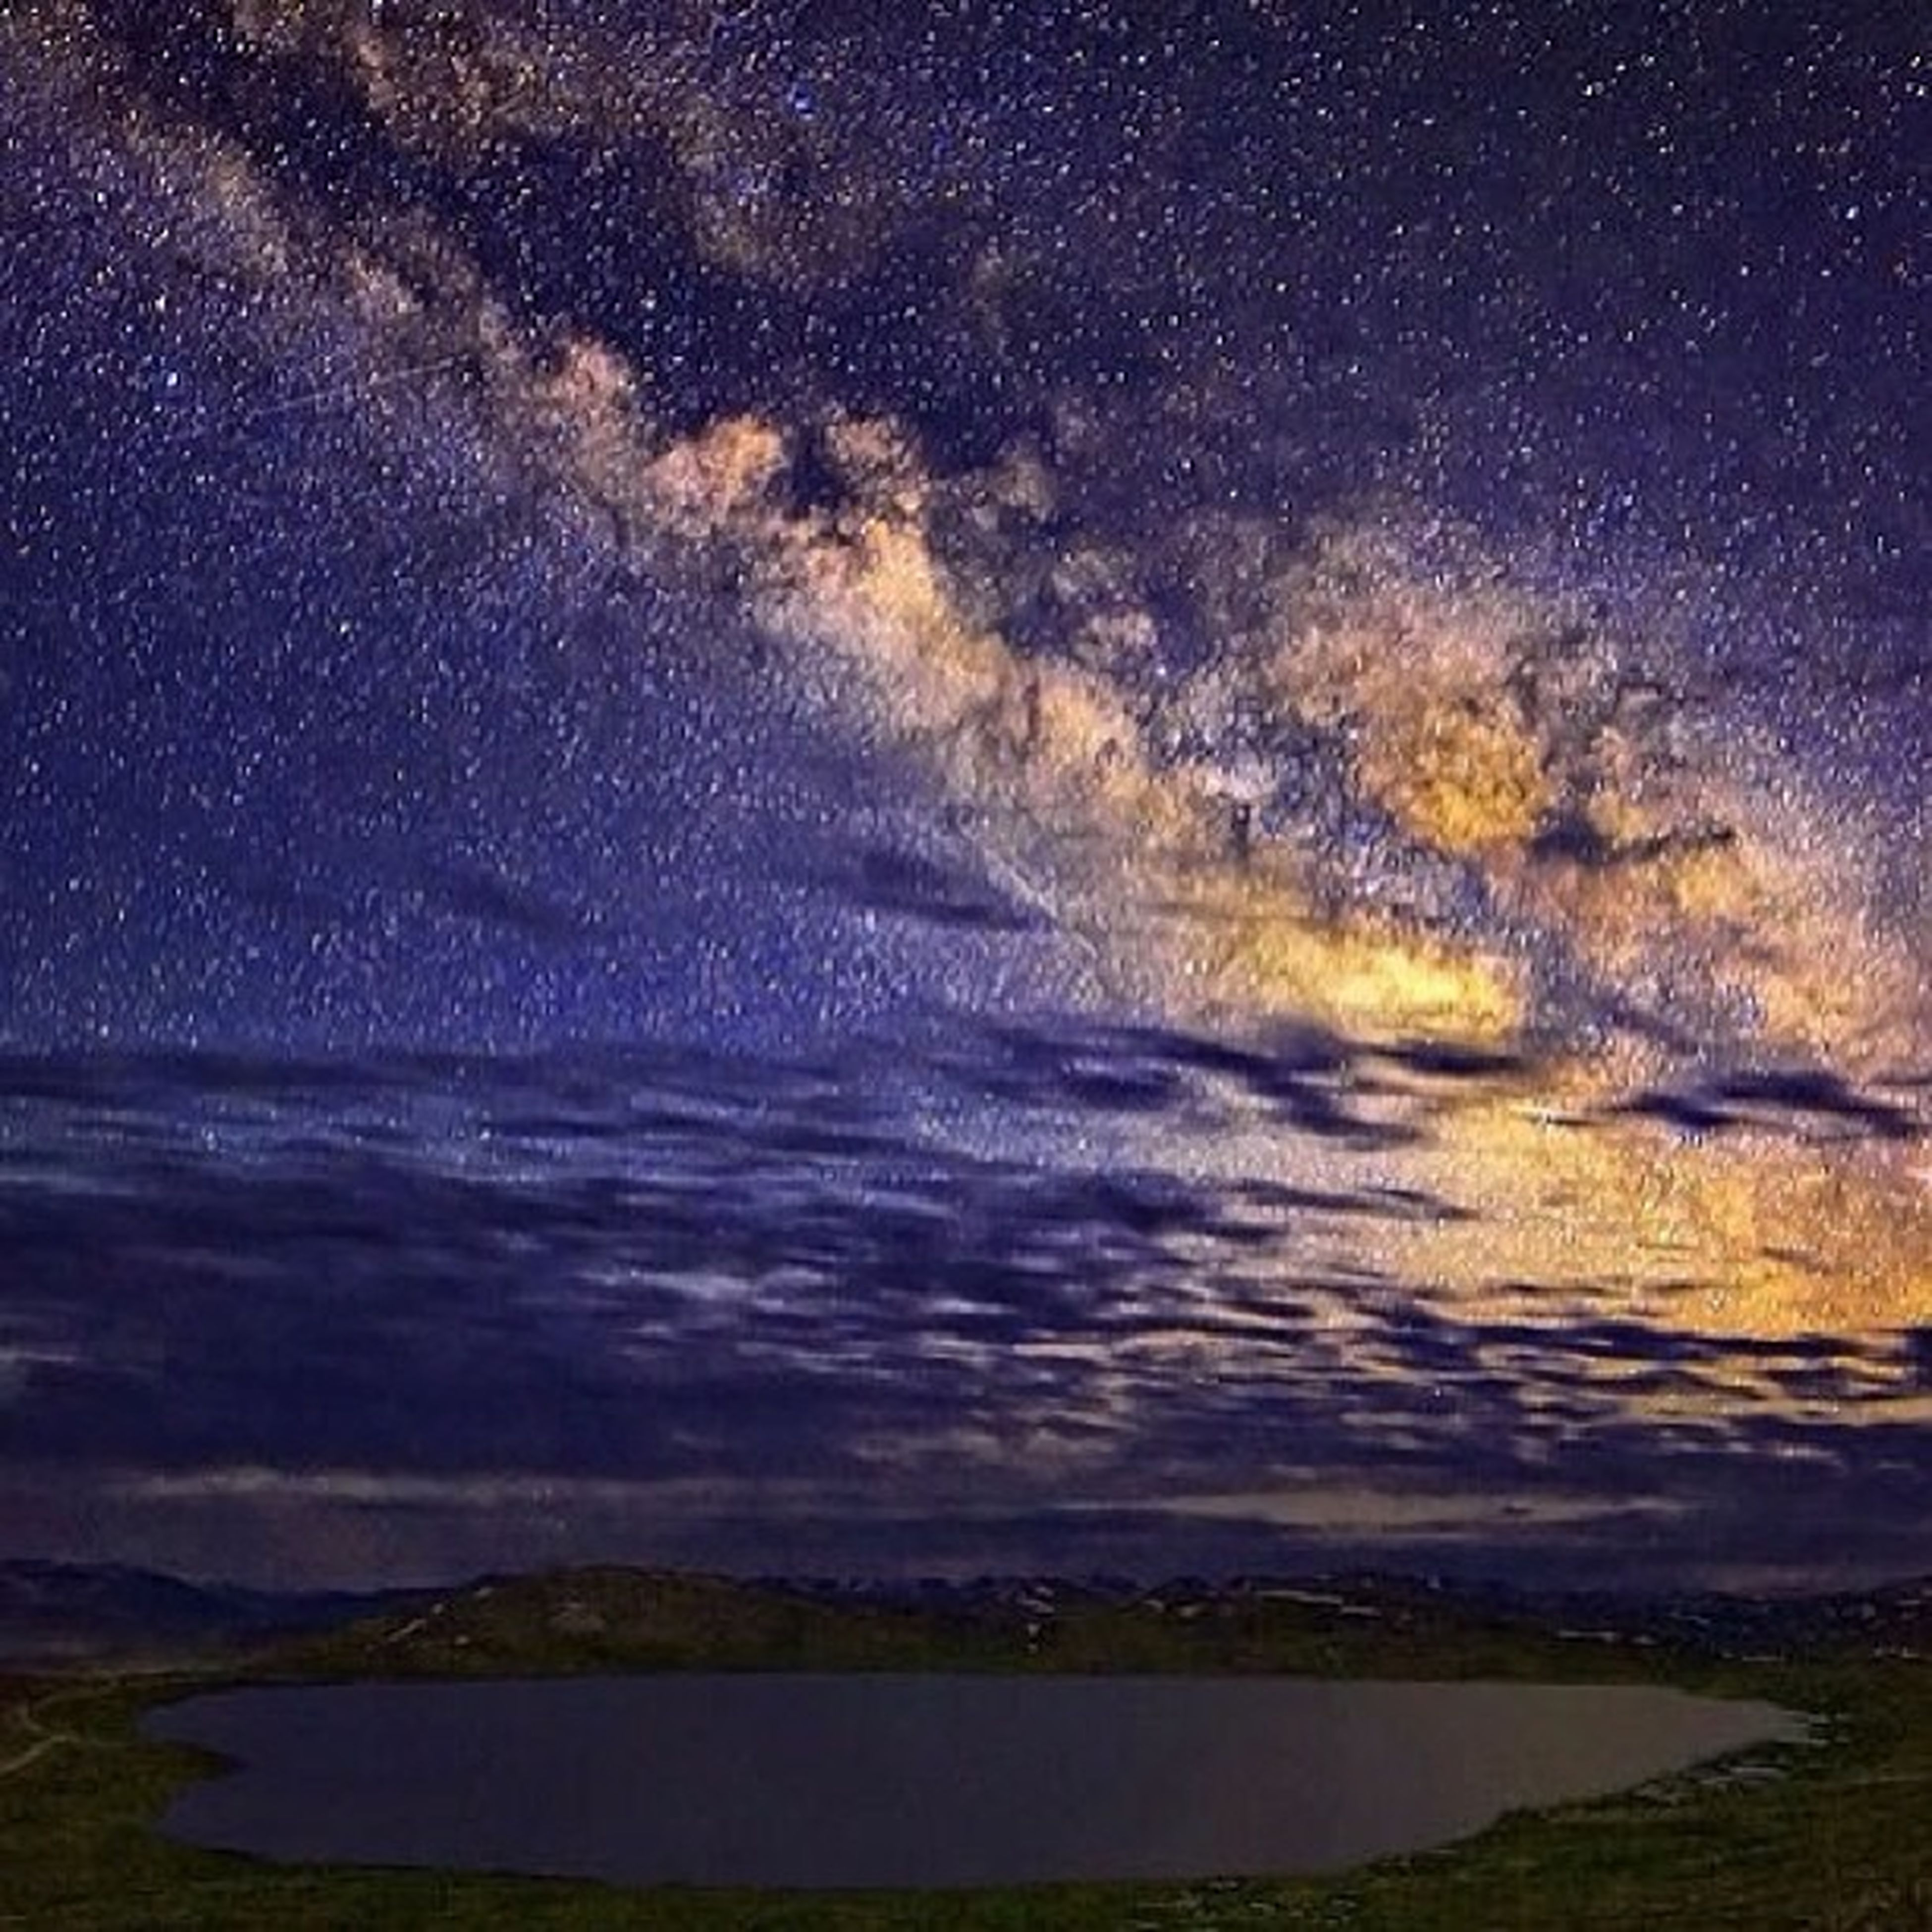 water, scenics, tranquil scene, beauty in nature, sky, tranquility, night, nature, star - space, sea, star field, idyllic, astronomy, weather, cloud - sky, outdoors, dusk, star, dramatic sky, galaxy